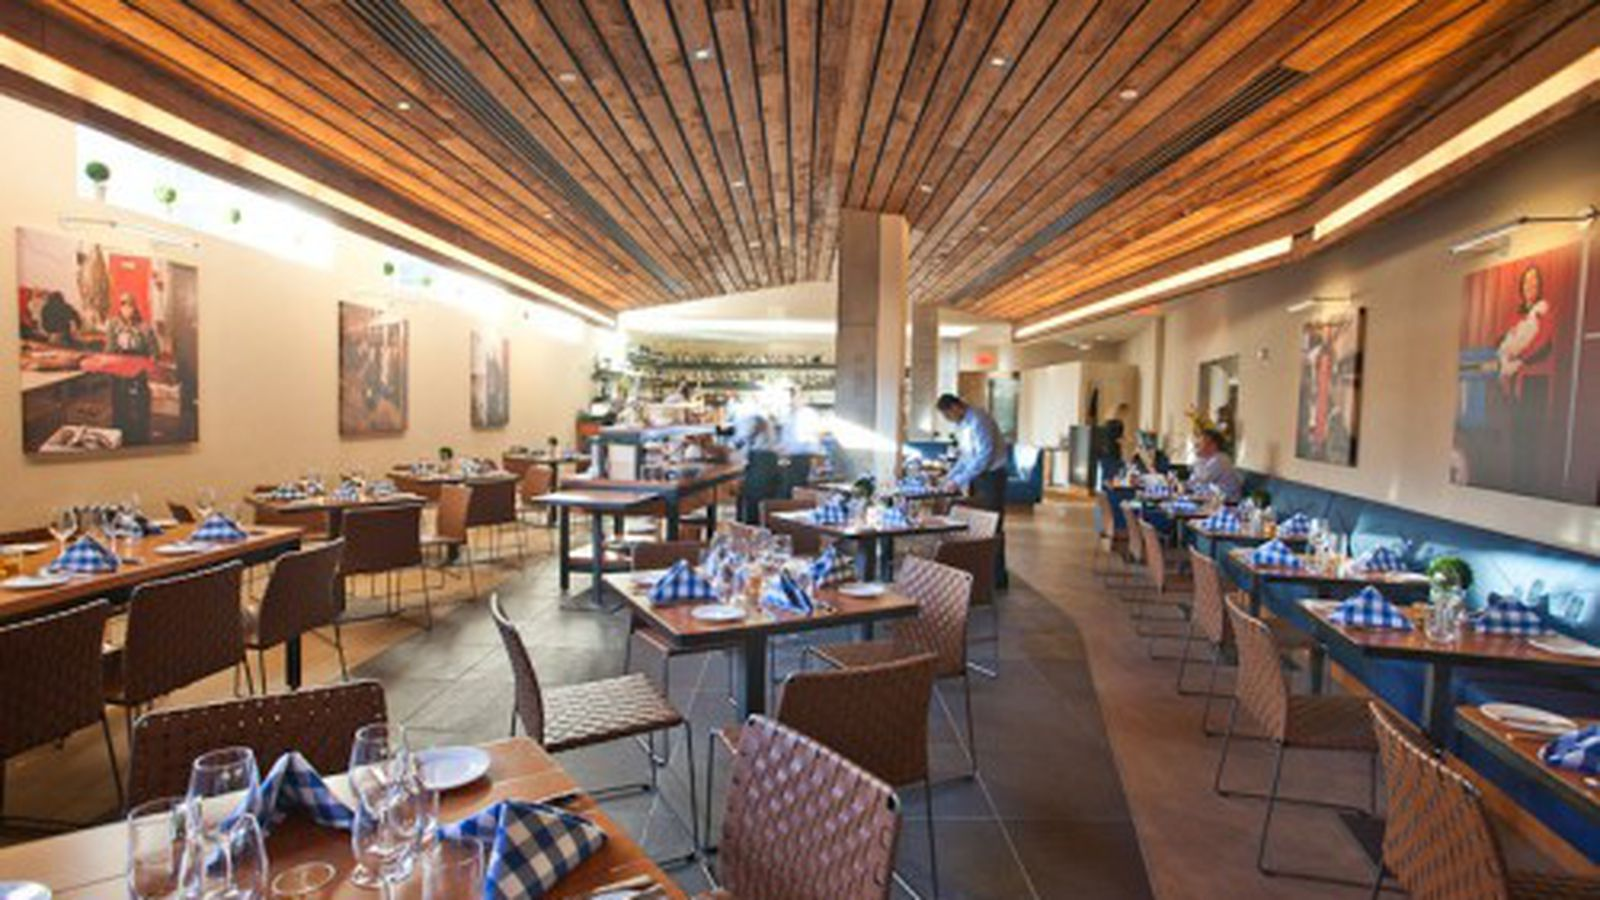 David Burke Kitchen The Garden Inside David Burke Kitchen At The James Hotel Eater Ny